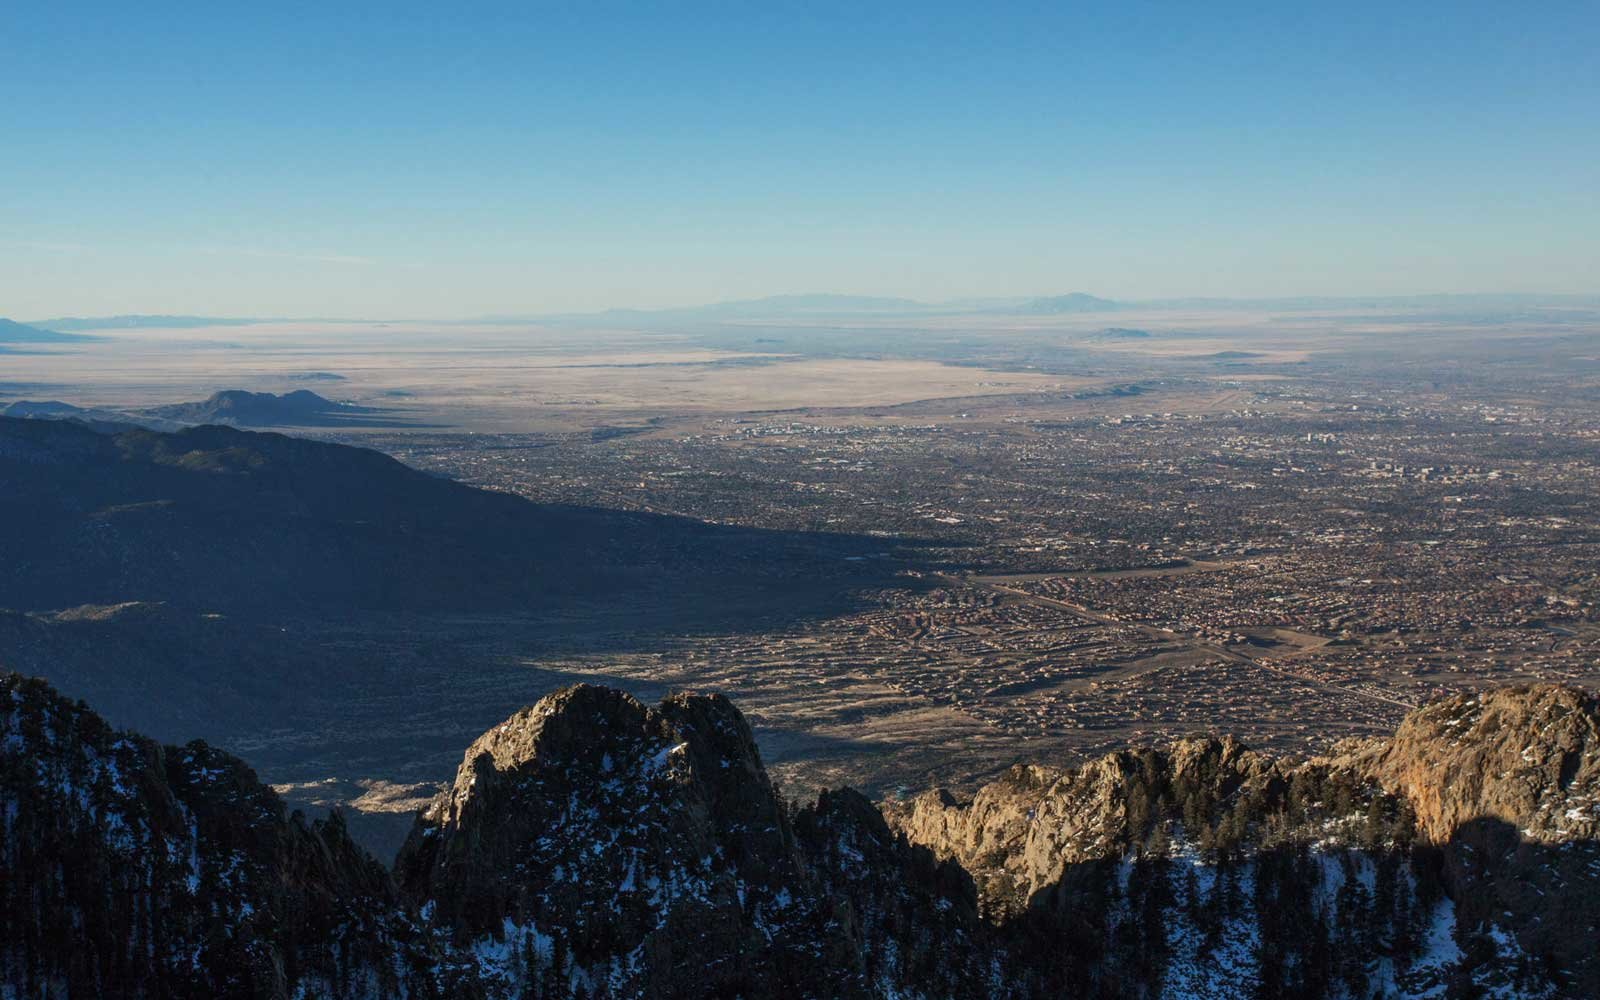 La Luz Trail Run in Albuquerque, New Mexico (August 5, 2018)